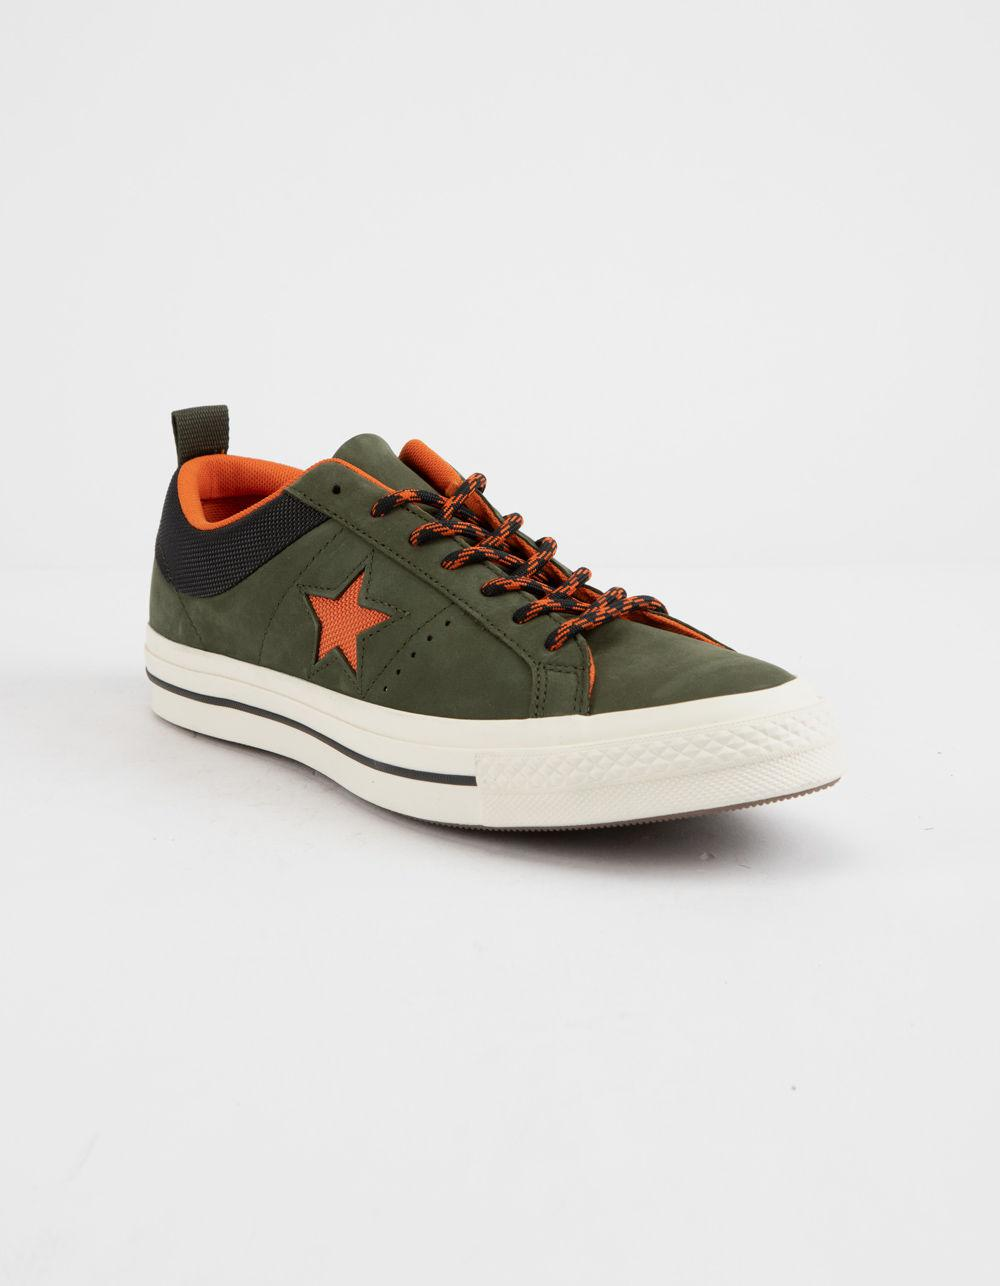 0af2f07520d Lyst - Converse One Star Ox Sierra Low Top Shoes in Green